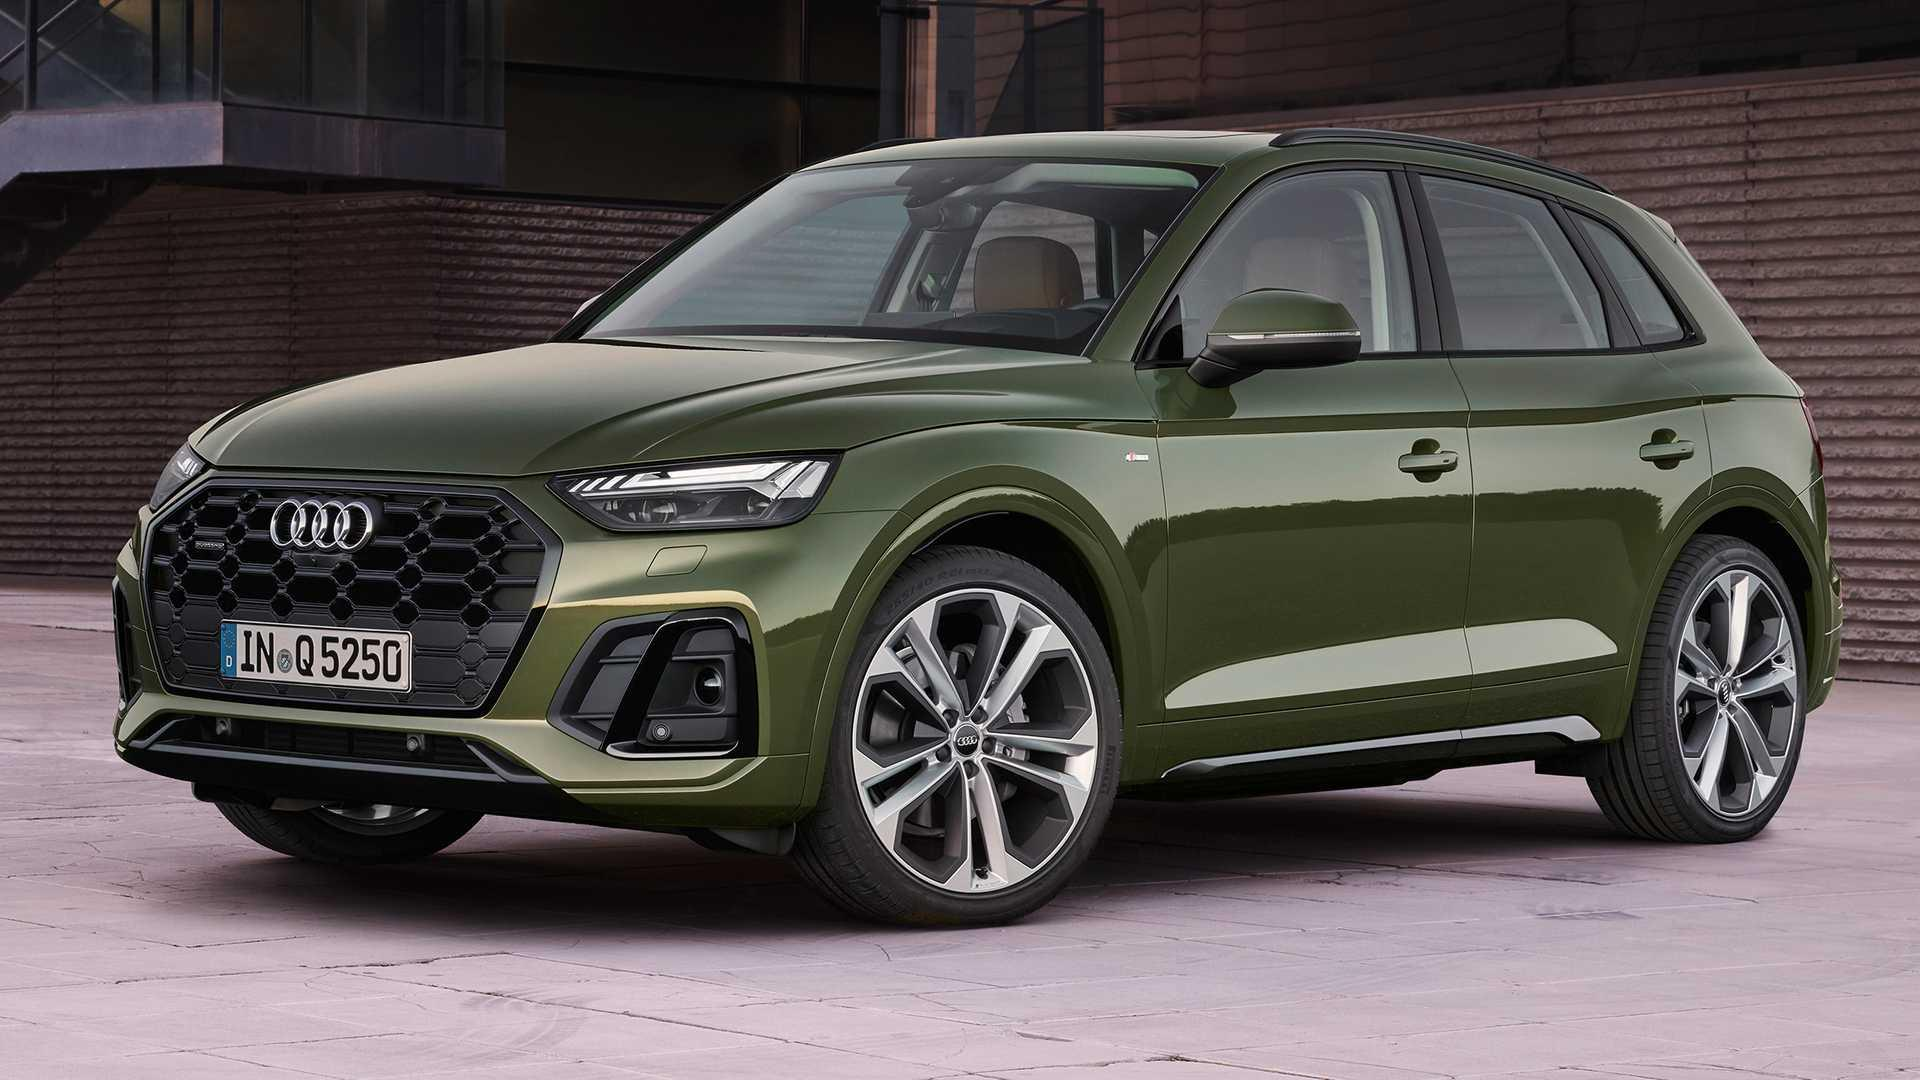 Updated 2021 Audi Q5 debuts with fresh new look, lower price